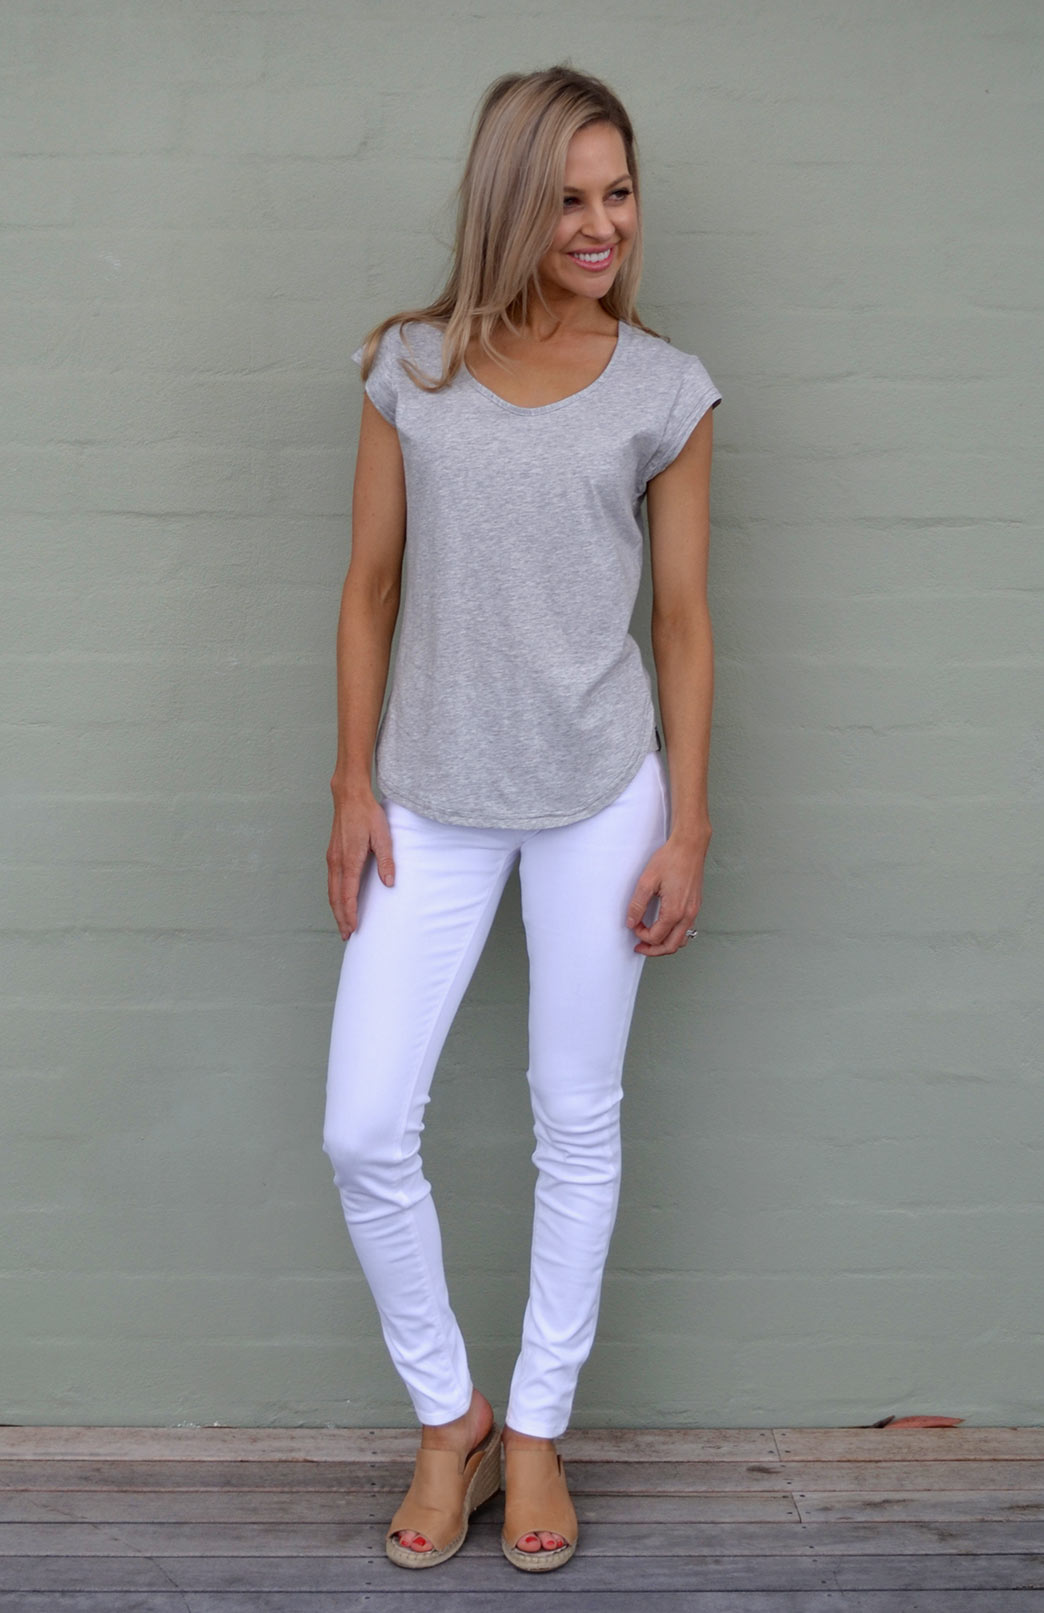 Cap Sleeve T-Shirt (Organic Cotton) - Women's Light Grey Marl Organic Cotton Cap Sleeve T-Shirt with Sweetheart Neckline and Side Detailing - Smitten Merino Tasmania Australia